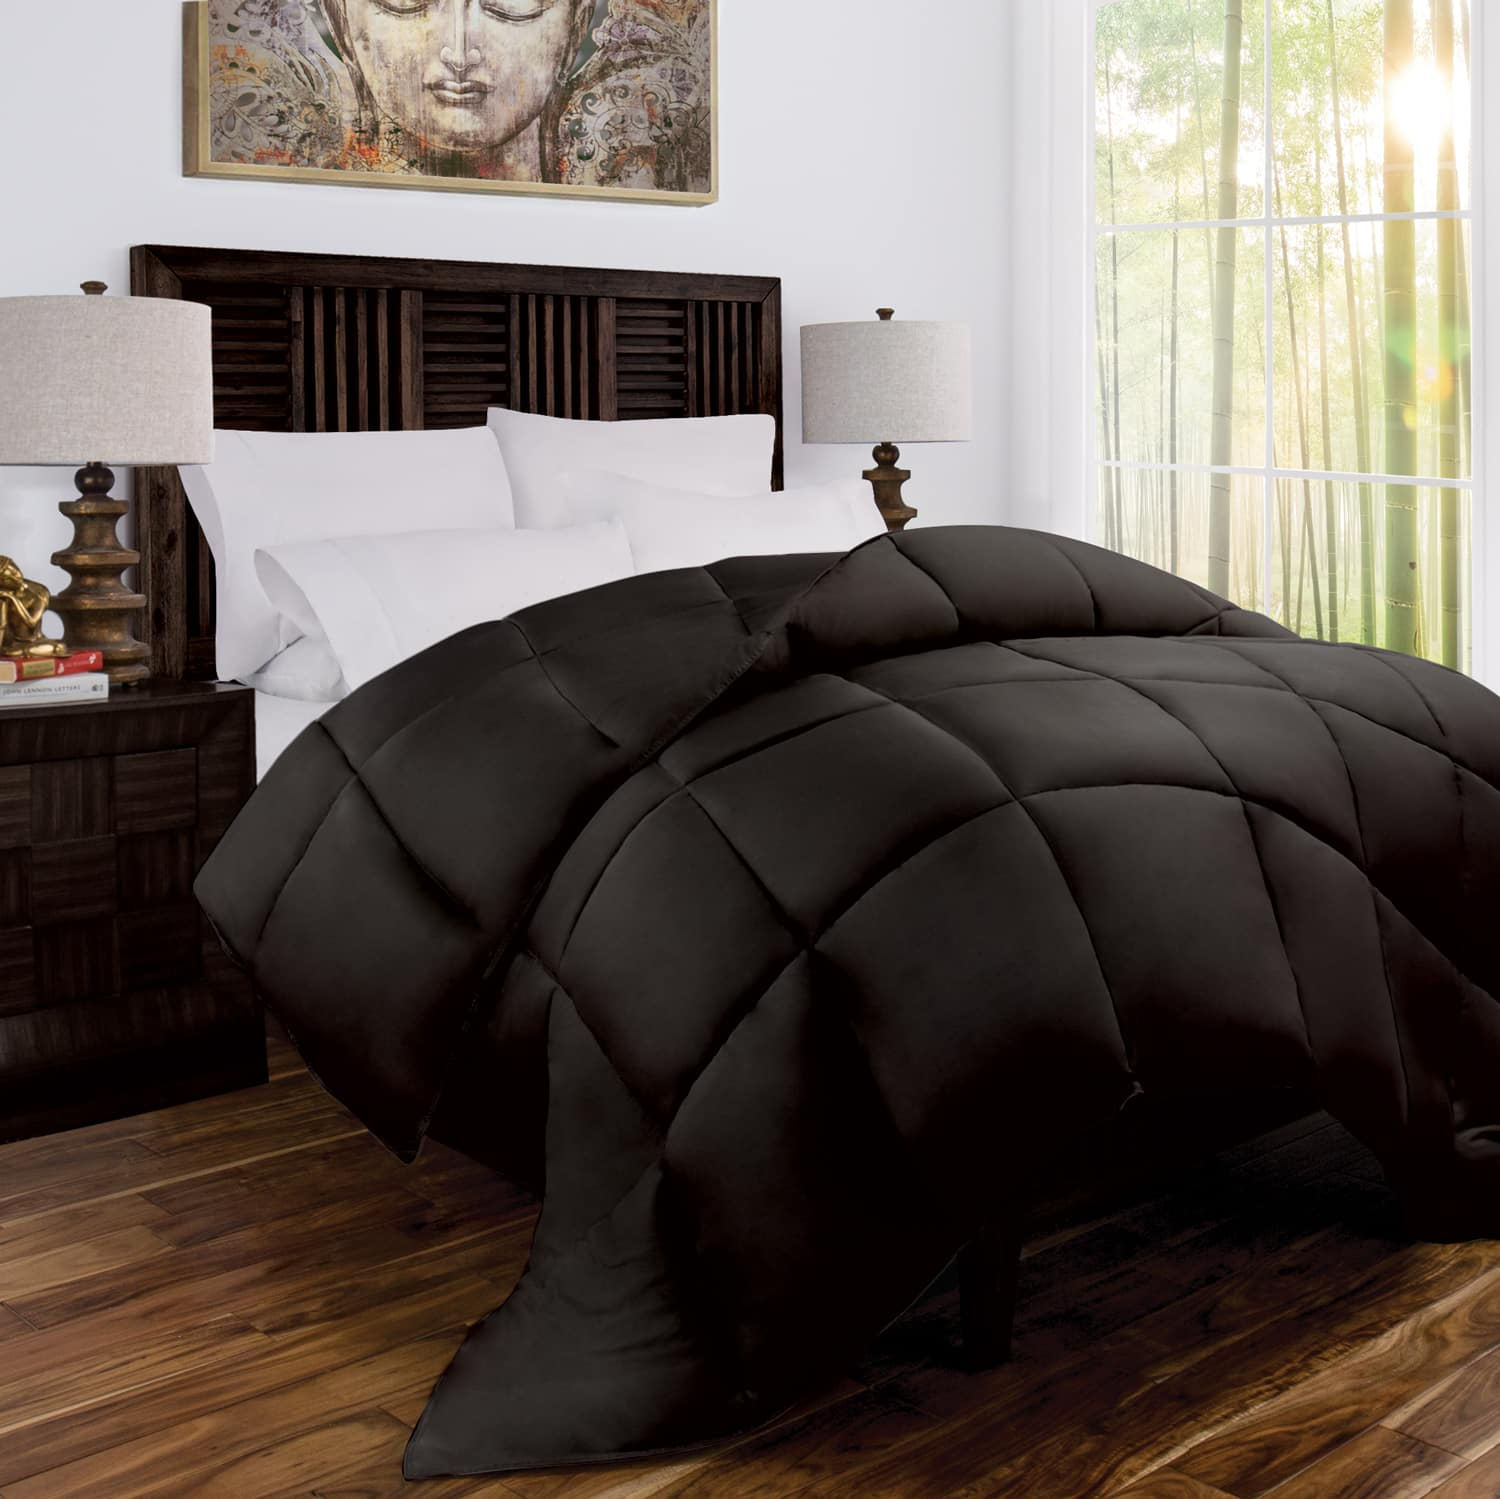 100% Rayon From Bamboo Goose Down Alternative Comforter Starting at $44.45 + Free Shipping